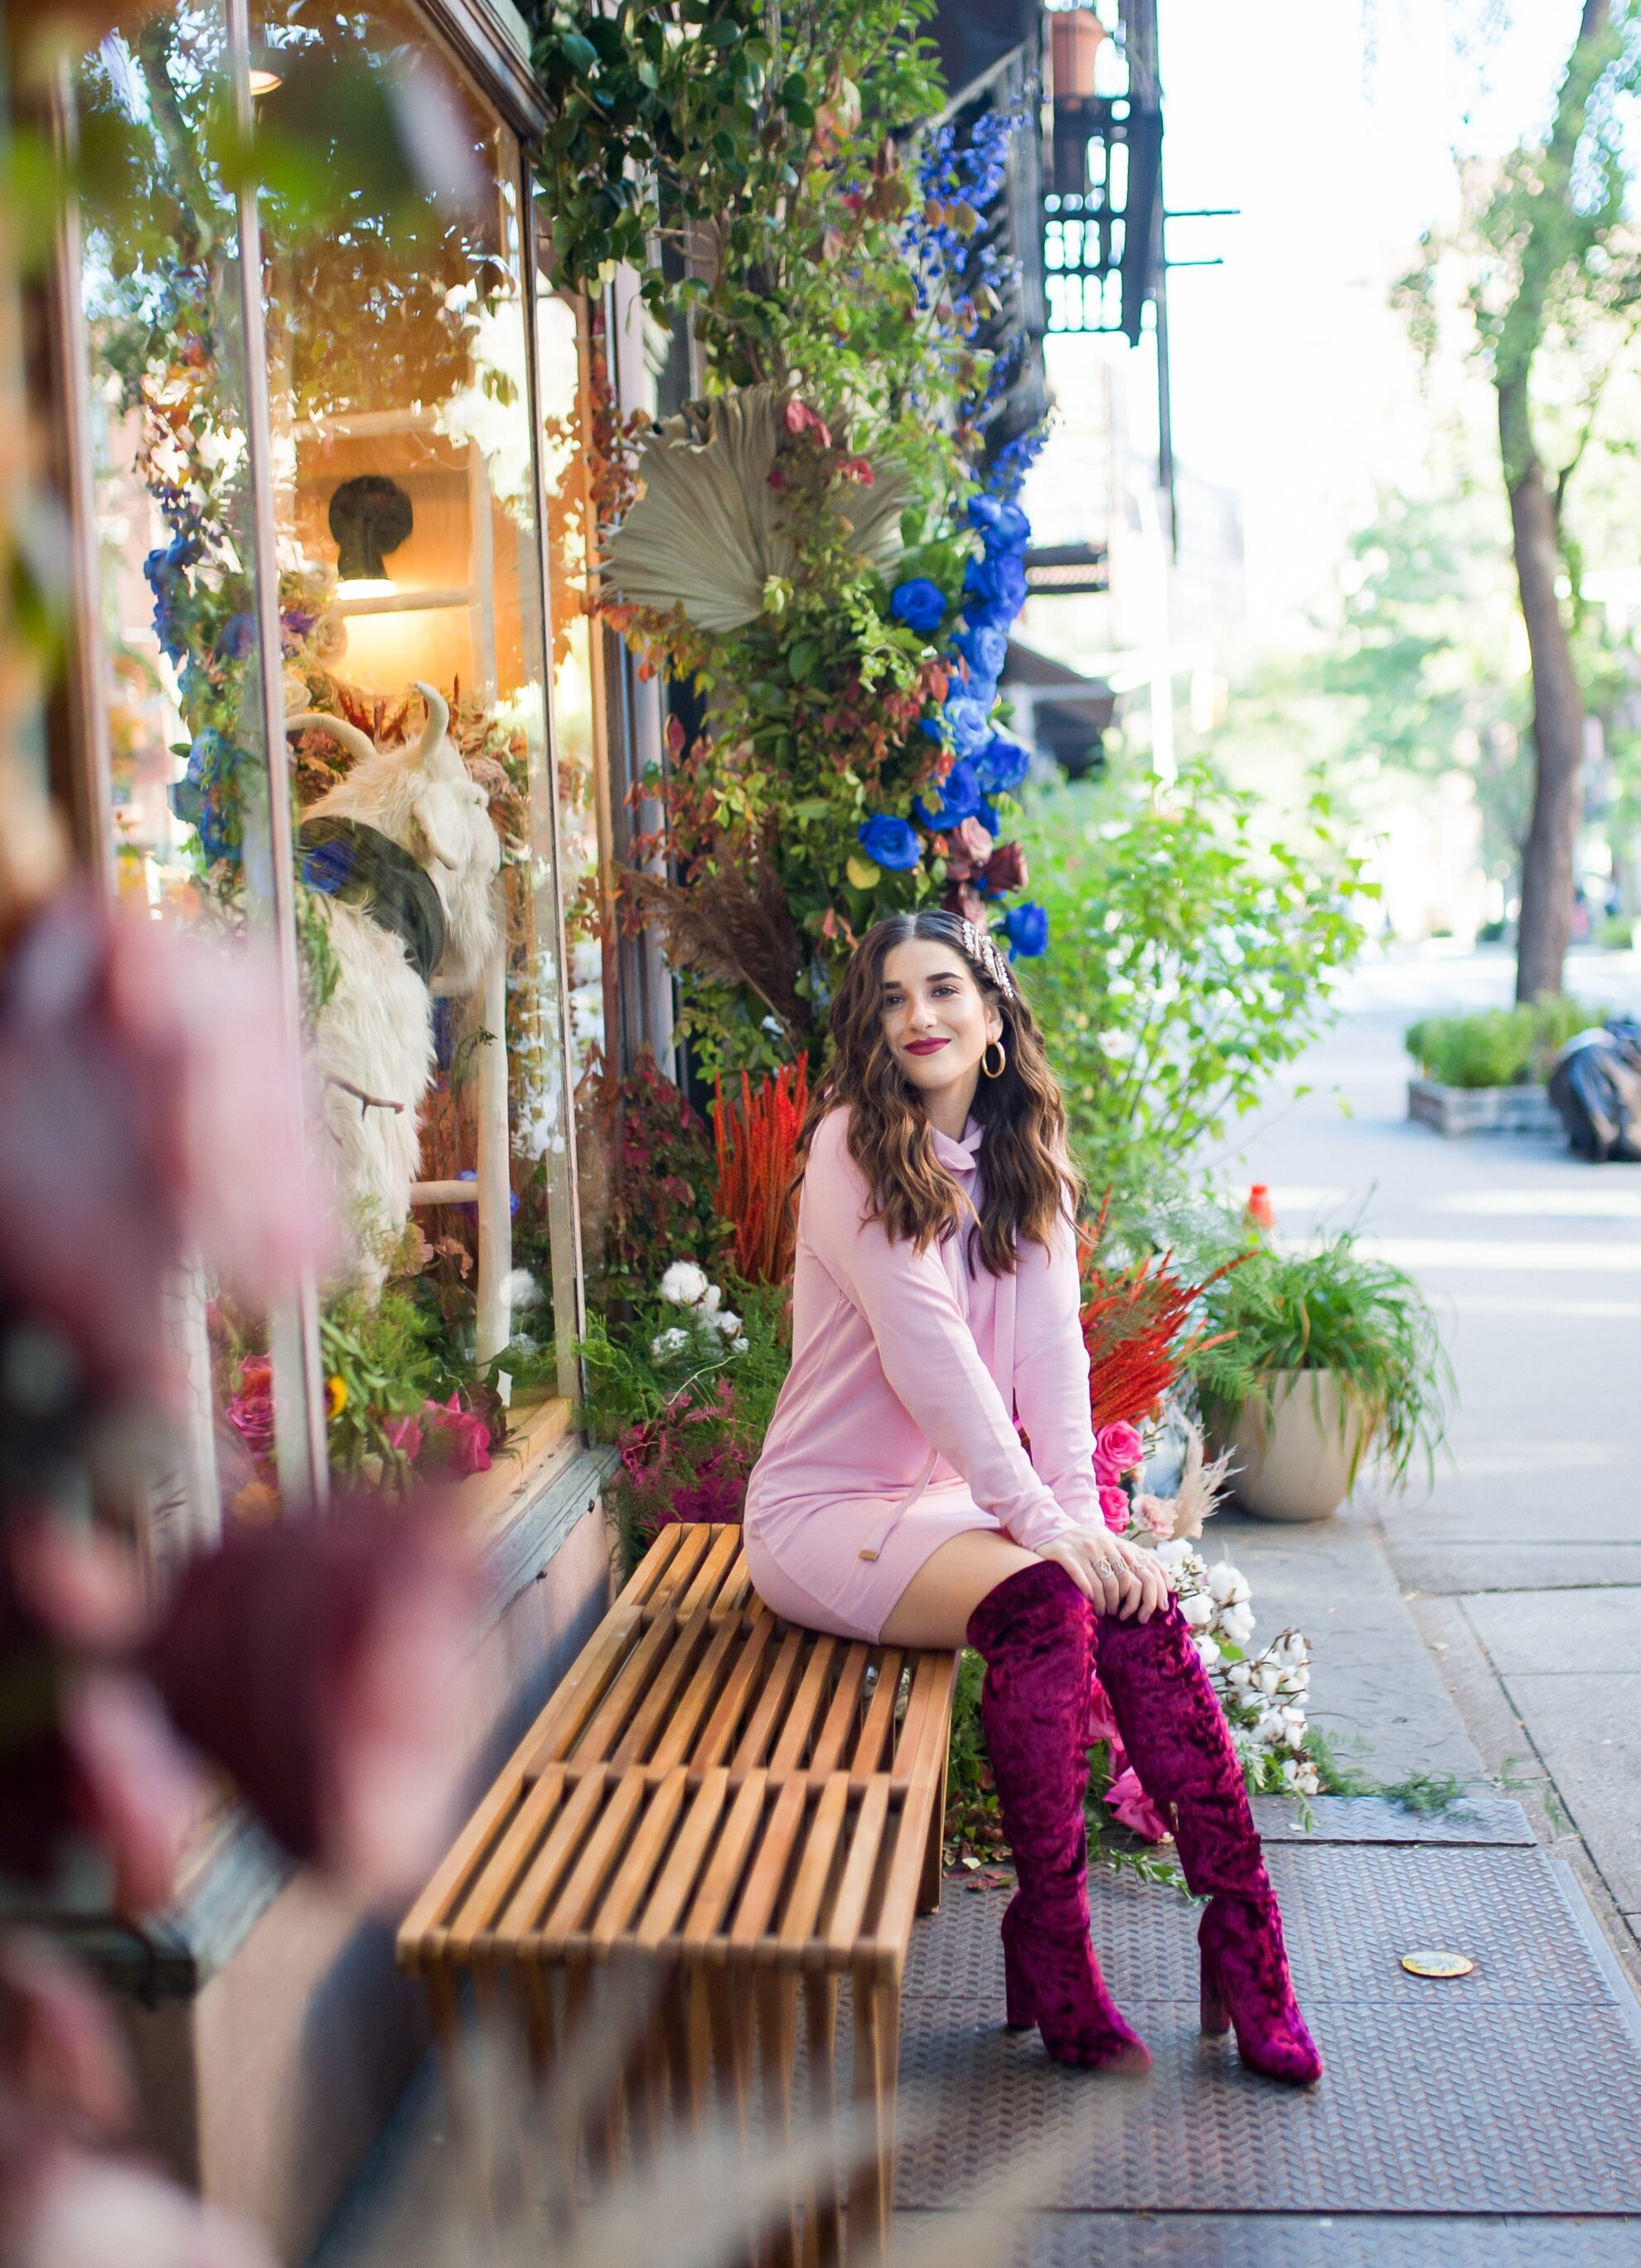 Pink Sweatshirt Dress Velvet OTK Boots Walmart Fashion Esther Santer Fashion Blog NYC Street Style Blogger Outfit OOTD Trendy Shopping Girl What How To Wear Hair Accessories Jewel Clips Fall Winter Styling Affordable Maroon Shoes Floral Backdrop Sale.jpg